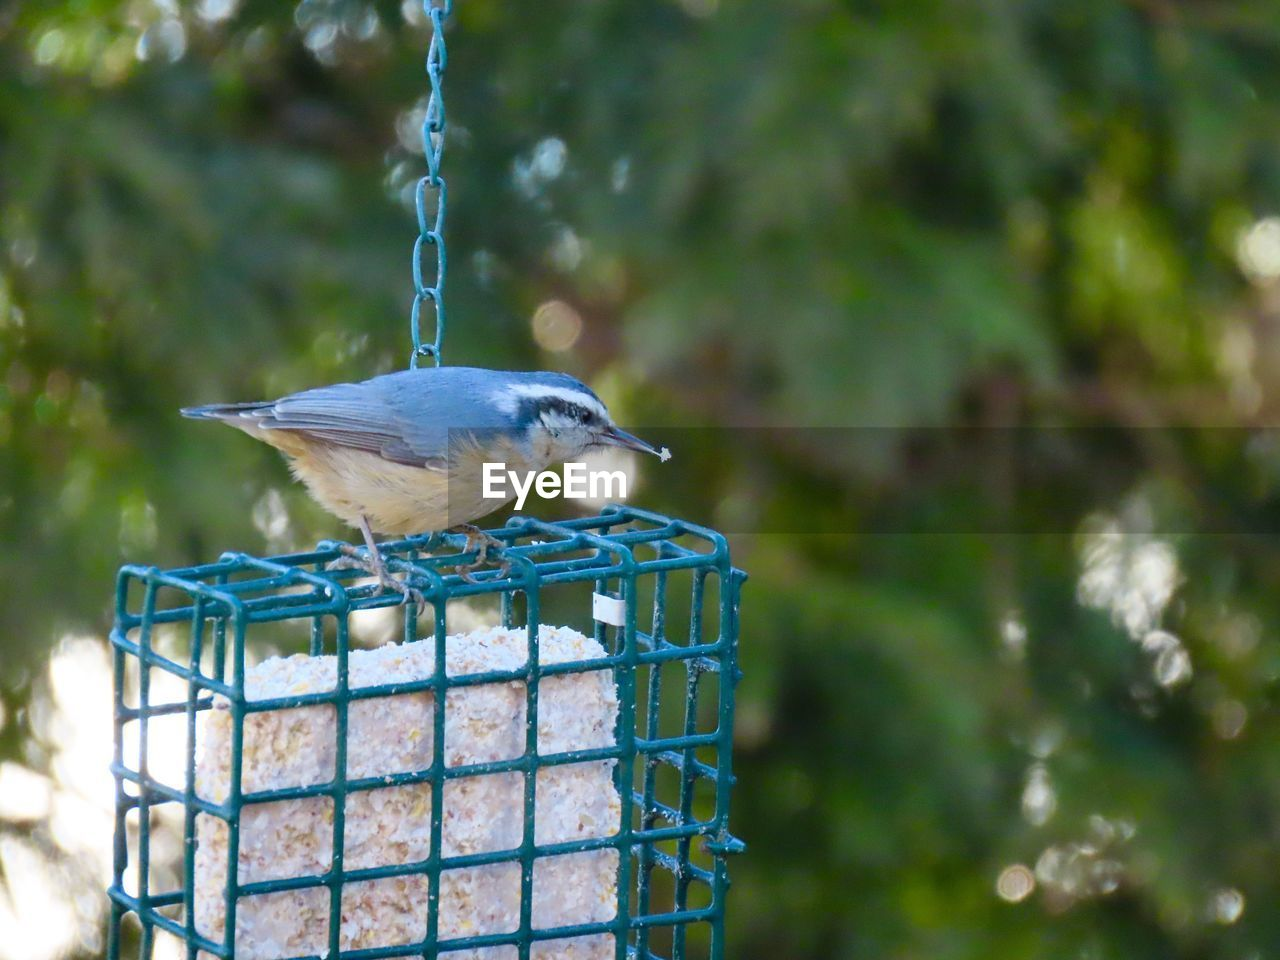 bird, animal wildlife, animal, vertebrate, animals in the wild, animal themes, one animal, perching, bird feeder, focus on foreground, no people, day, nature, outdoors, metal, hanging, selective focus, close-up, bluetit